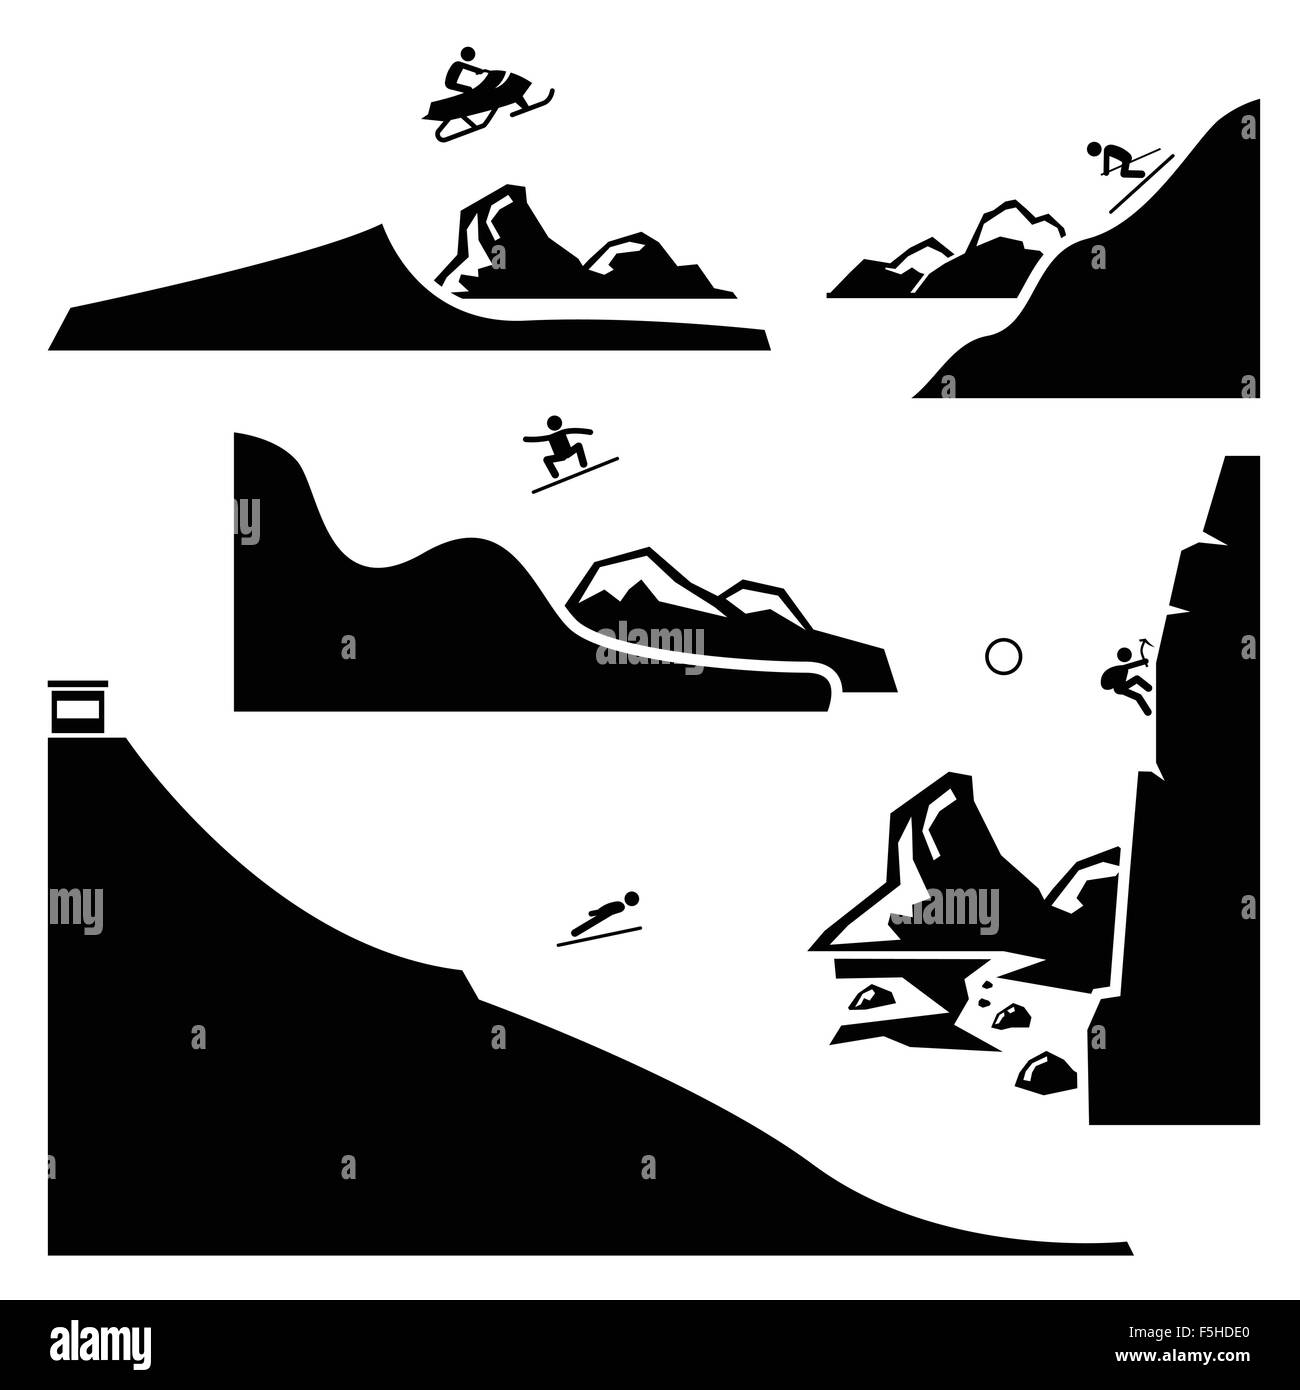 Extreme Sports - Snowmobiling, Skiing, Snowboarding, Ski Flying, Ice Climbing - Stick Figure Pictogram Icons Cliparts - Stock Image